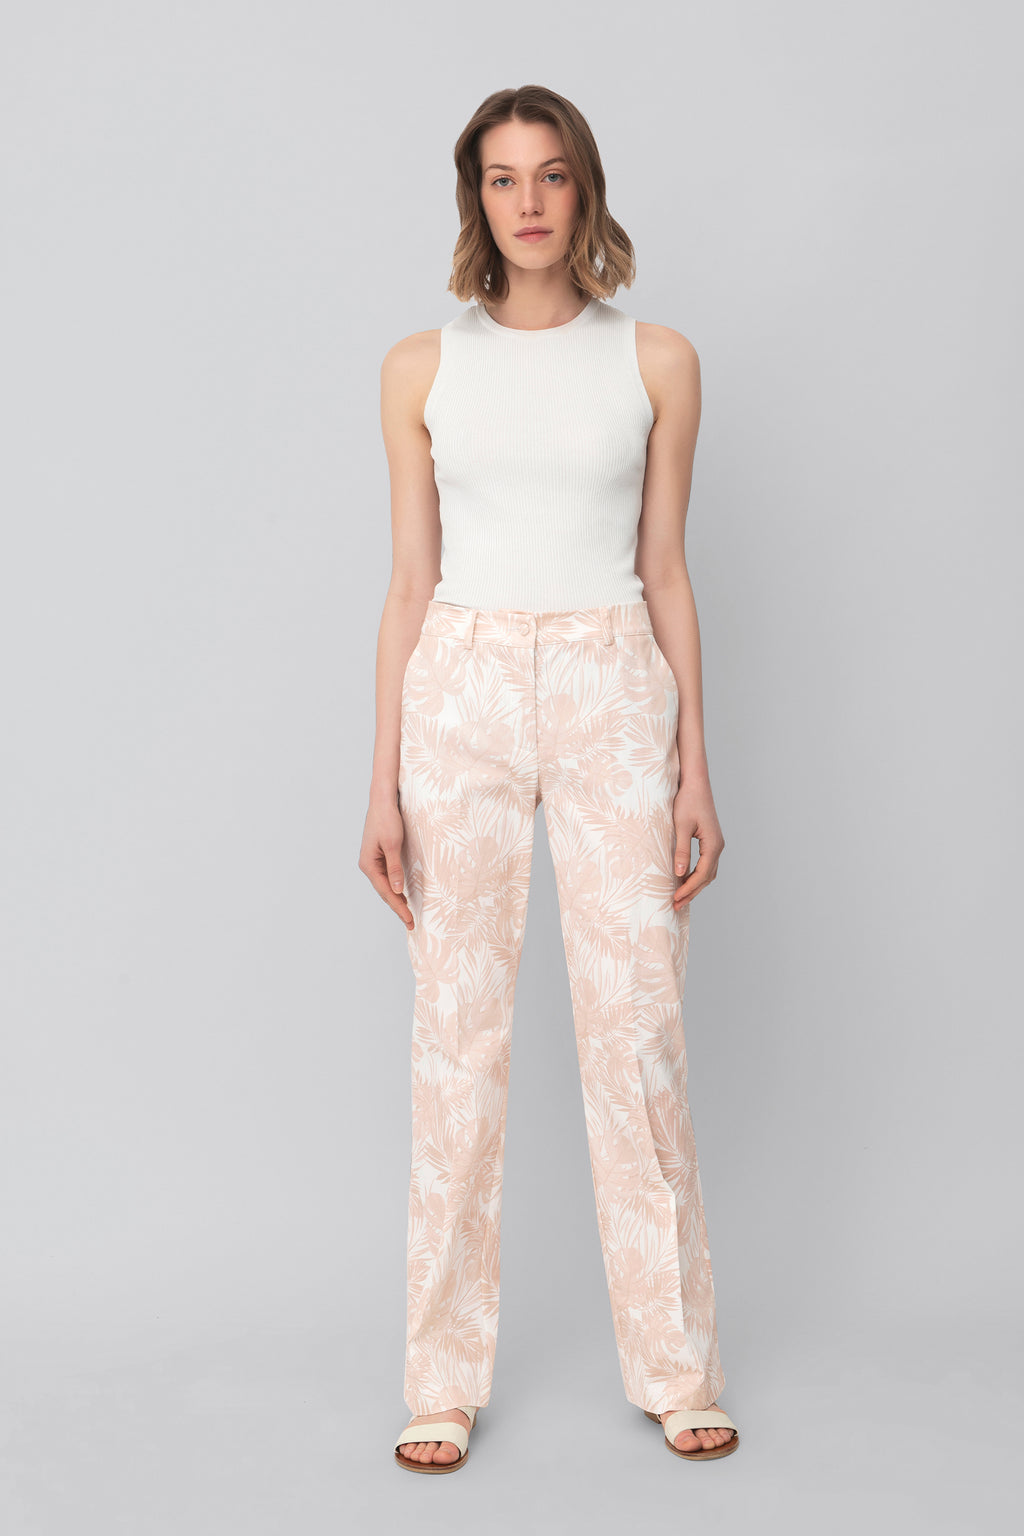 The Printed Cotton Pink Lover Pants